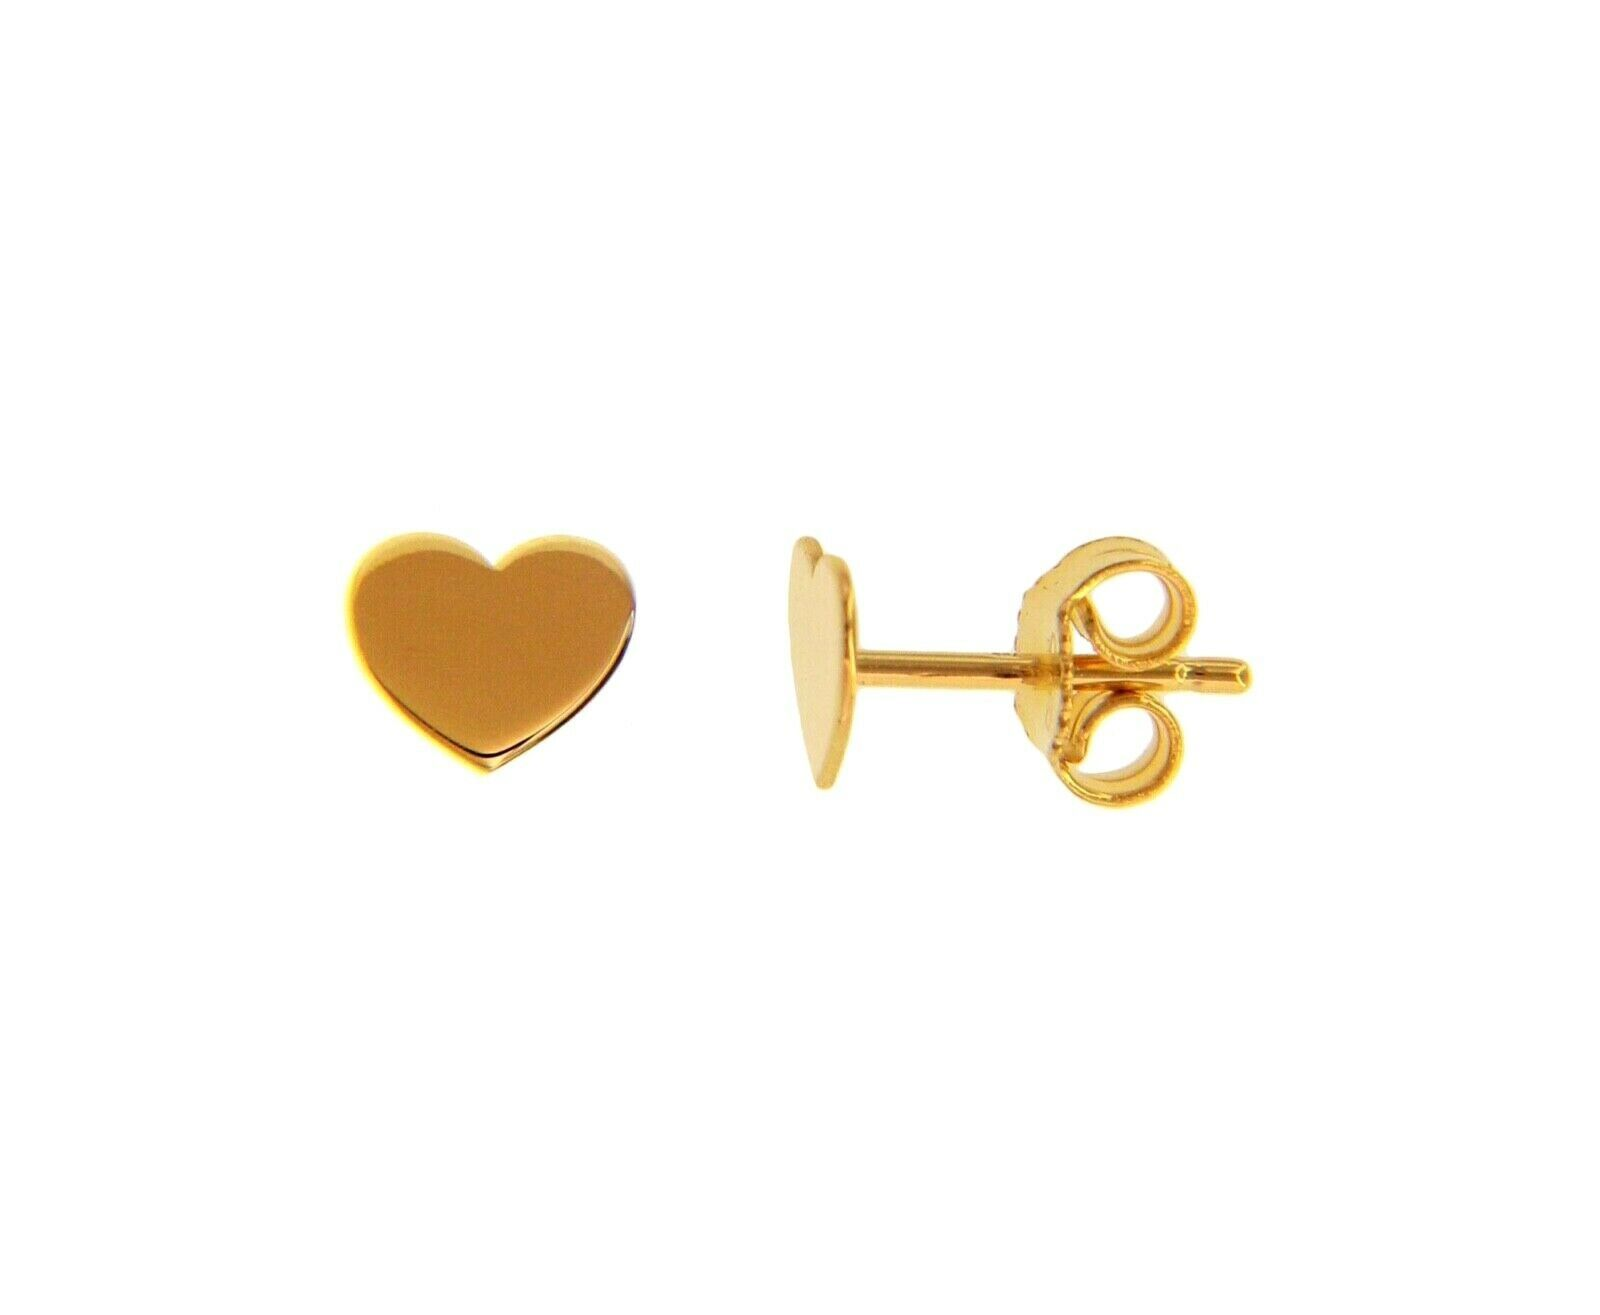 SOLID 18K YELLOW GOLD EARRINGS FLAT HEART, SHINY, SMOOTH, 8x6mm, MADE IN ITALY